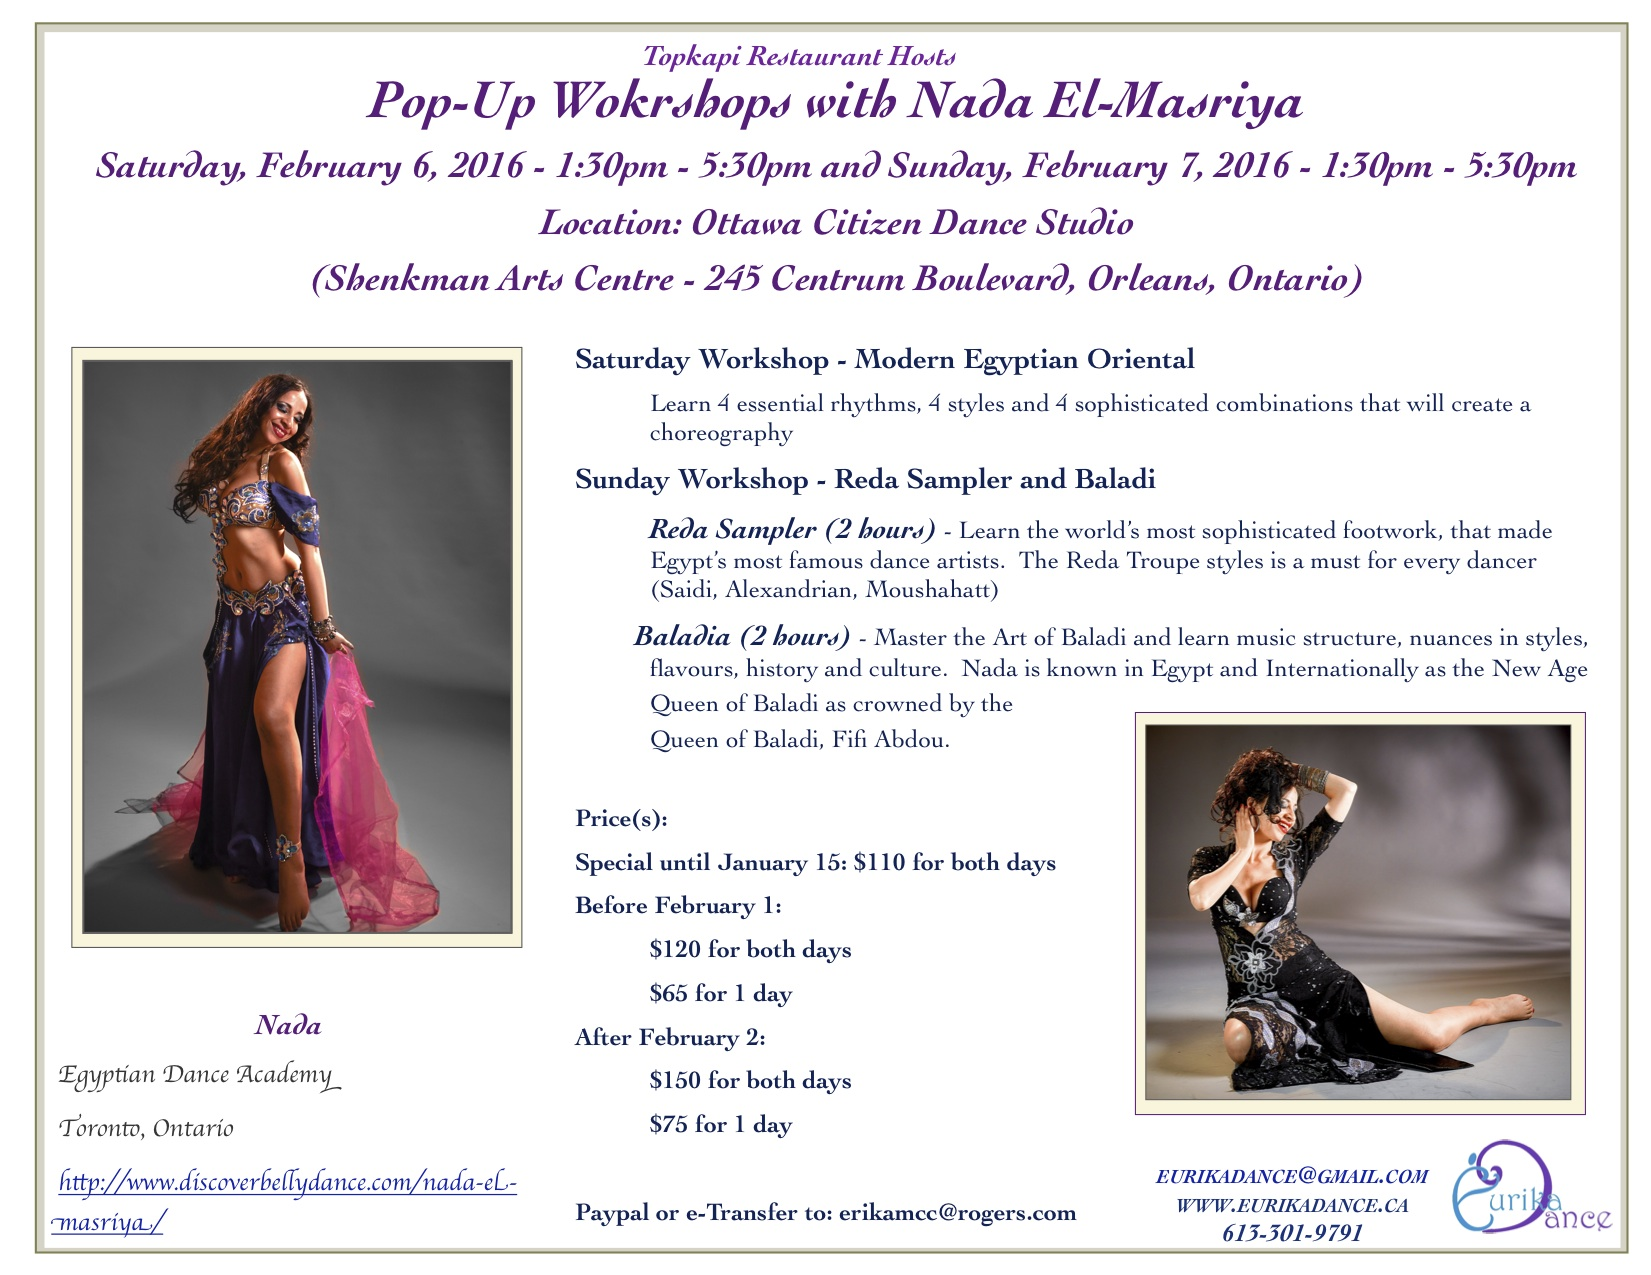 Pop Up Belly Dance Workshop